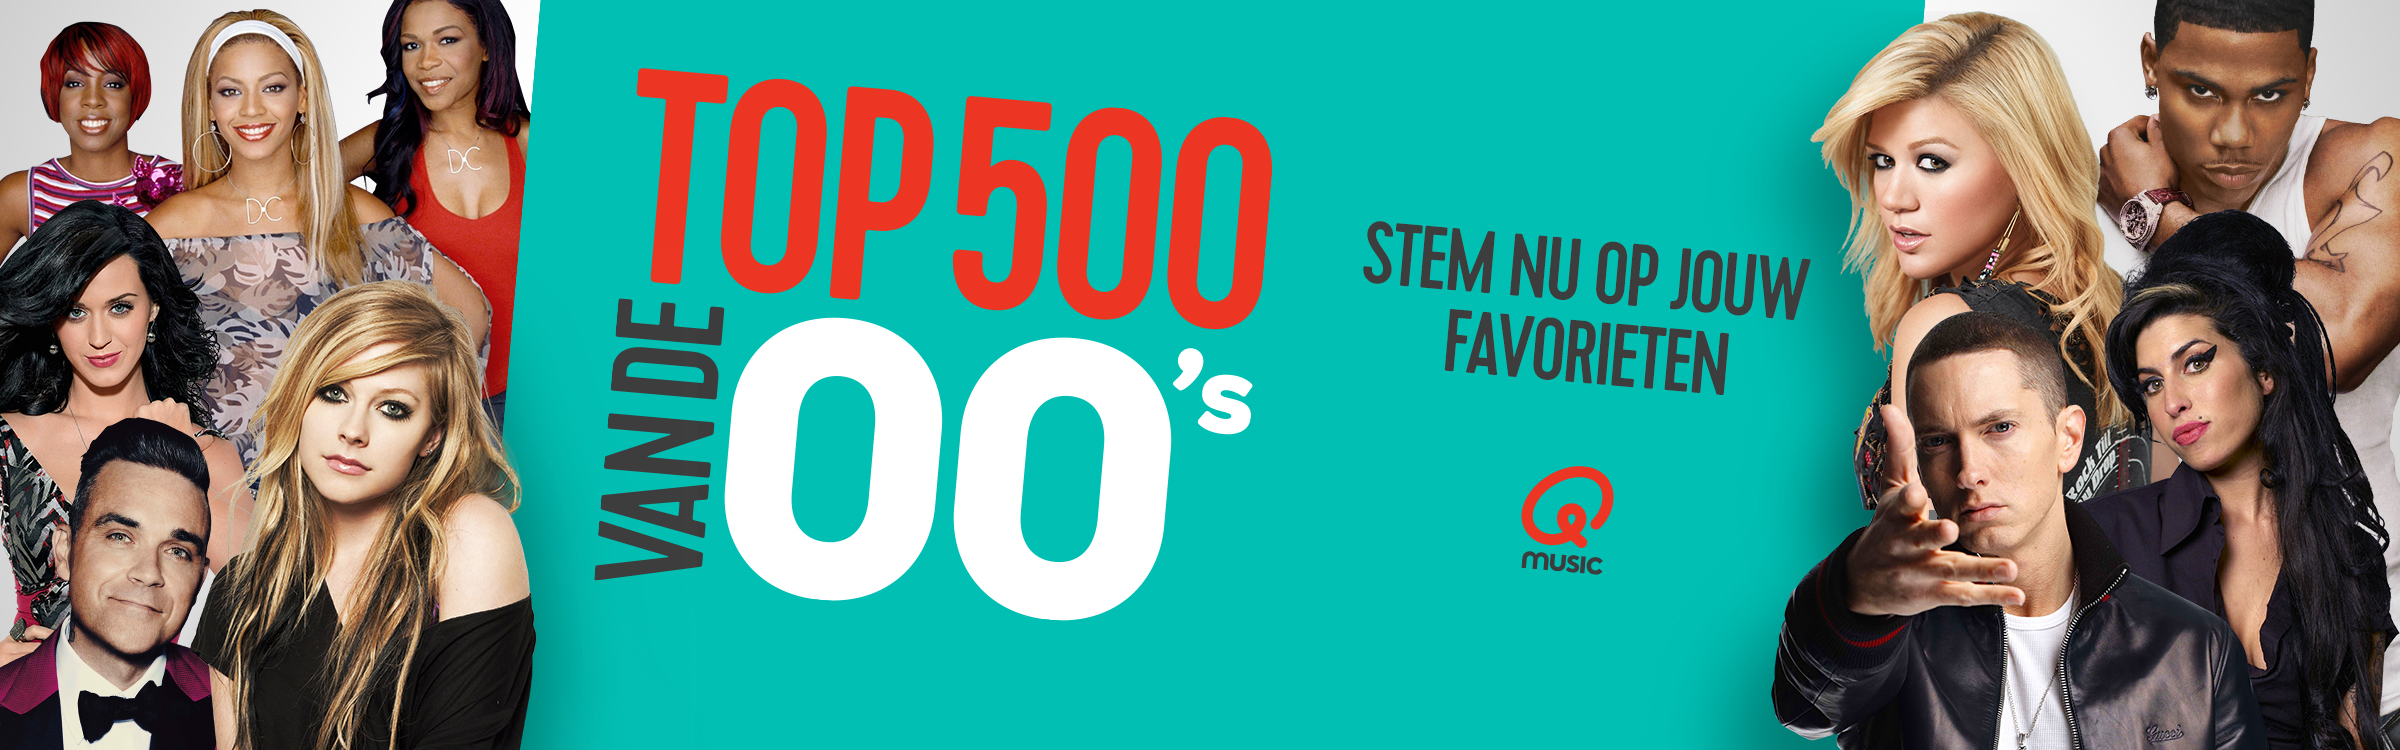 Qmusic actionheader top500 00s